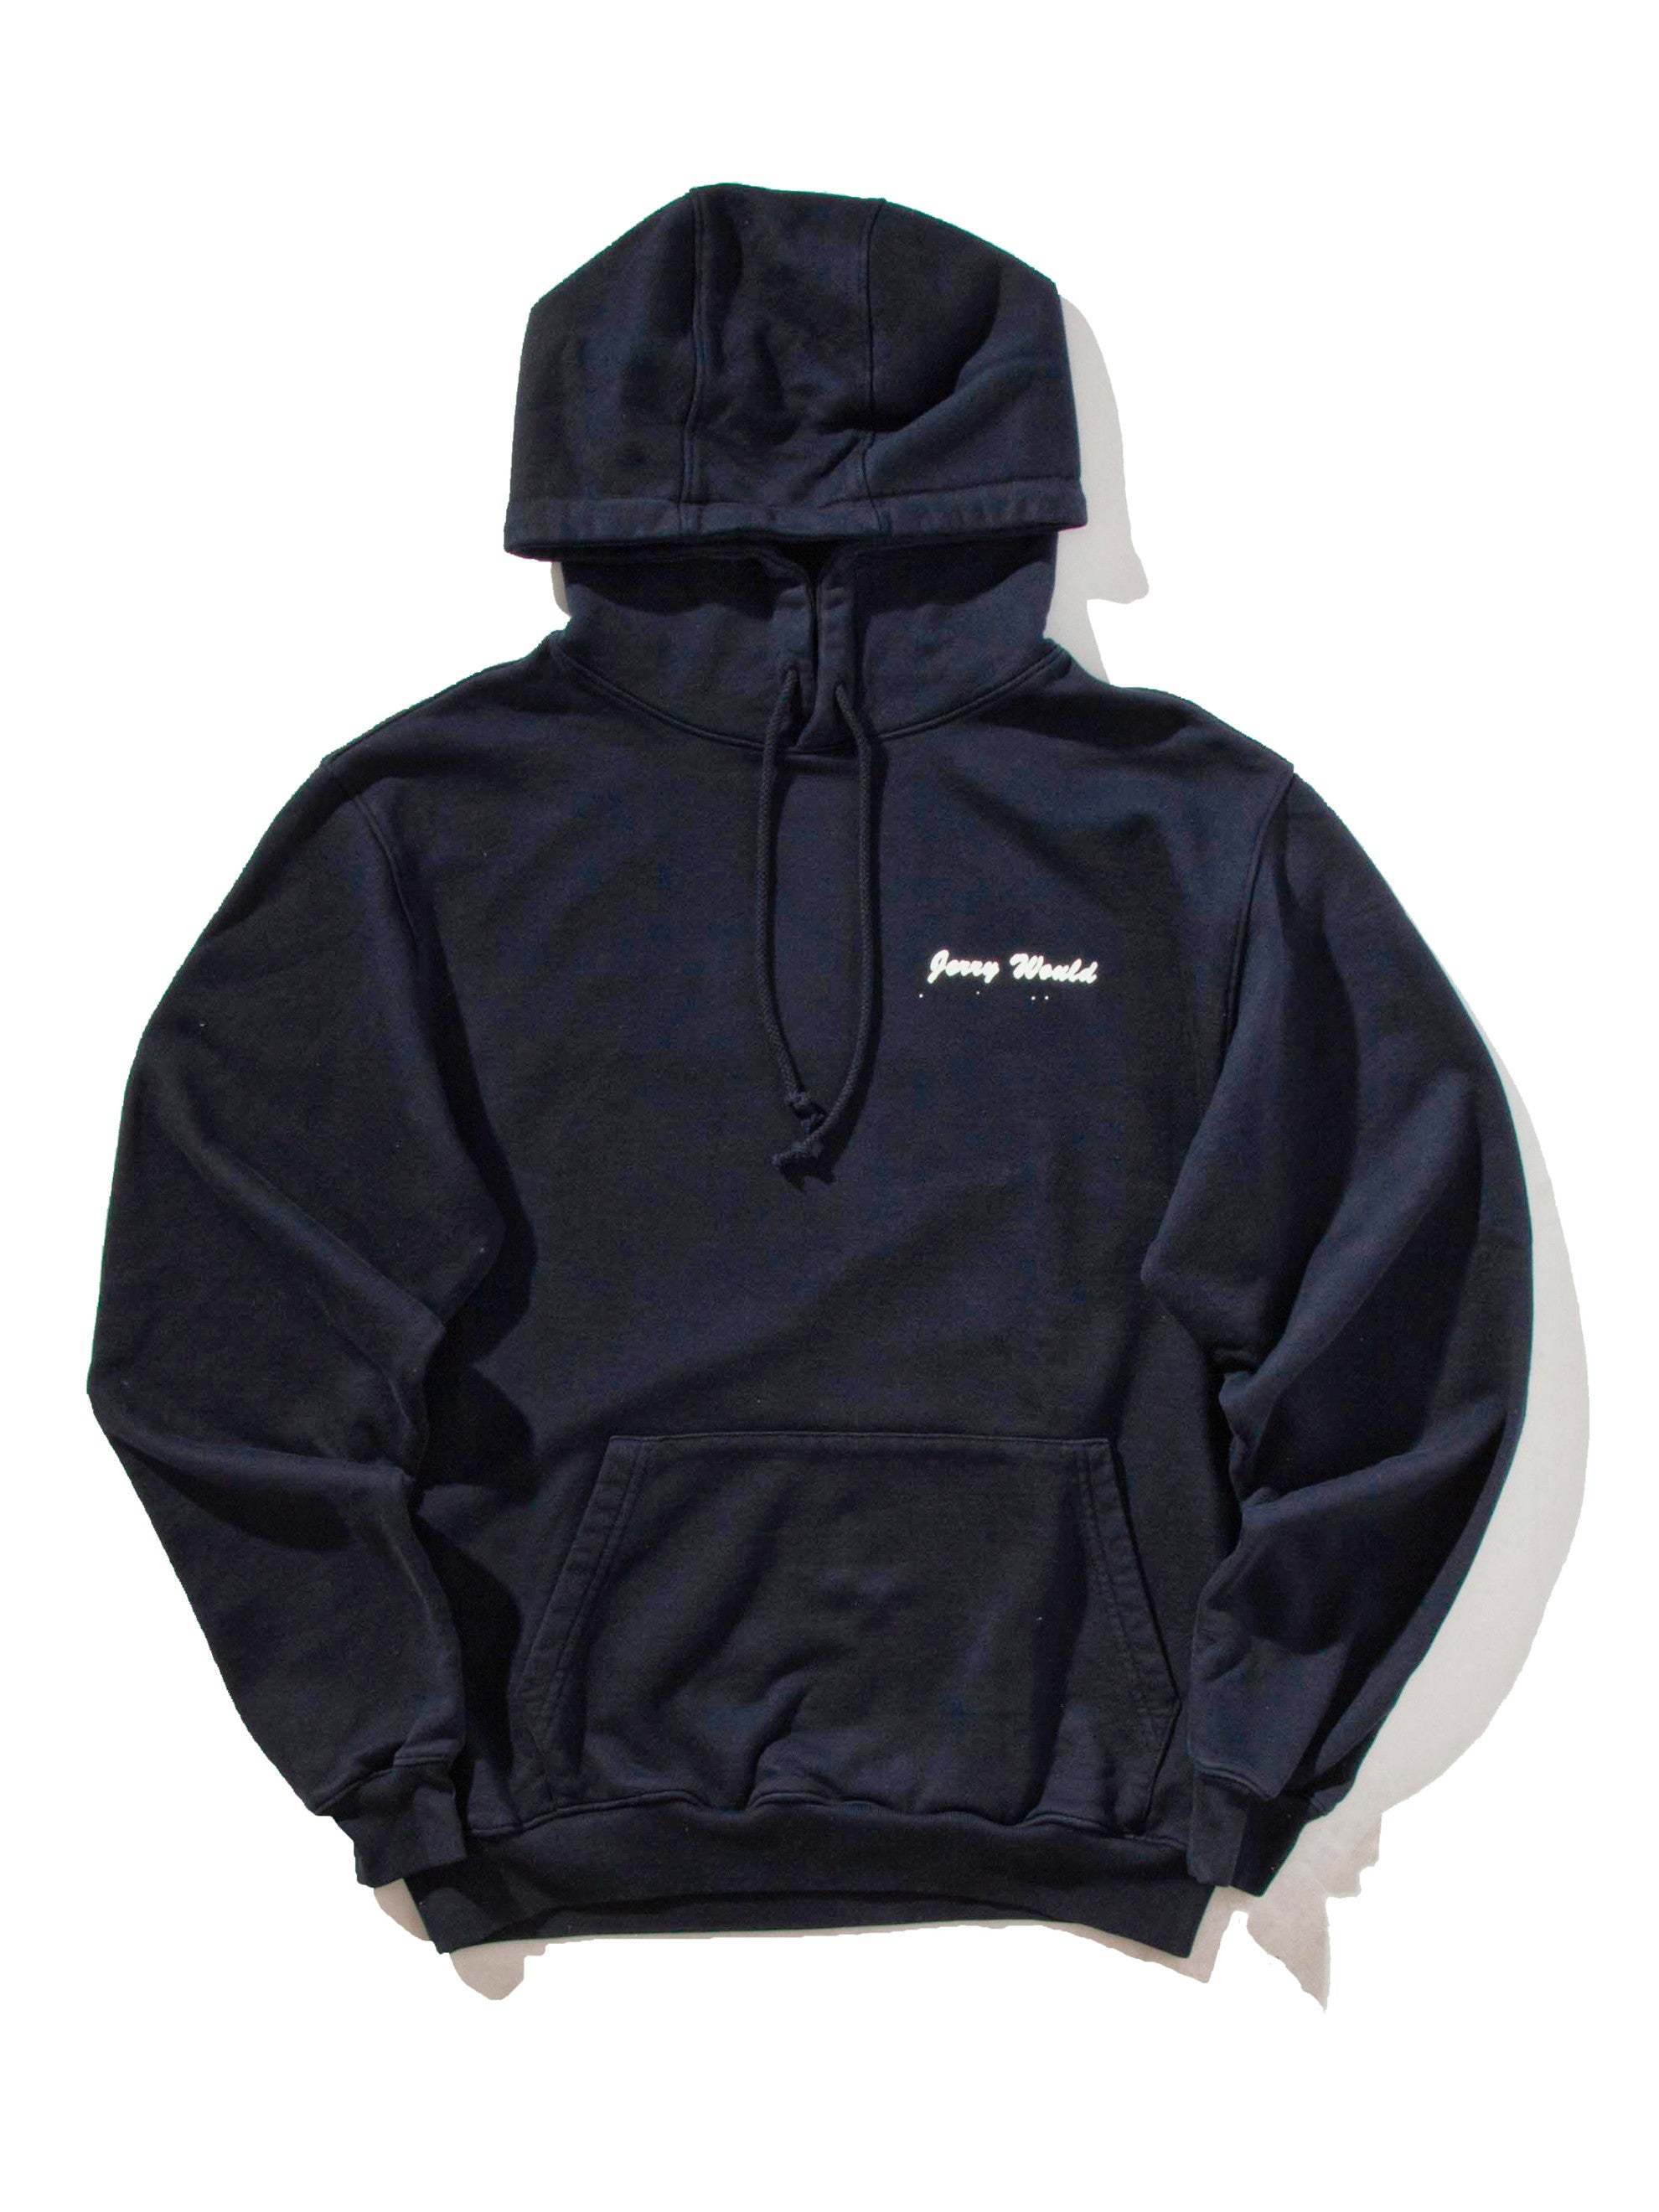 Navy Jerry Would Hooded Sweatshirt 6